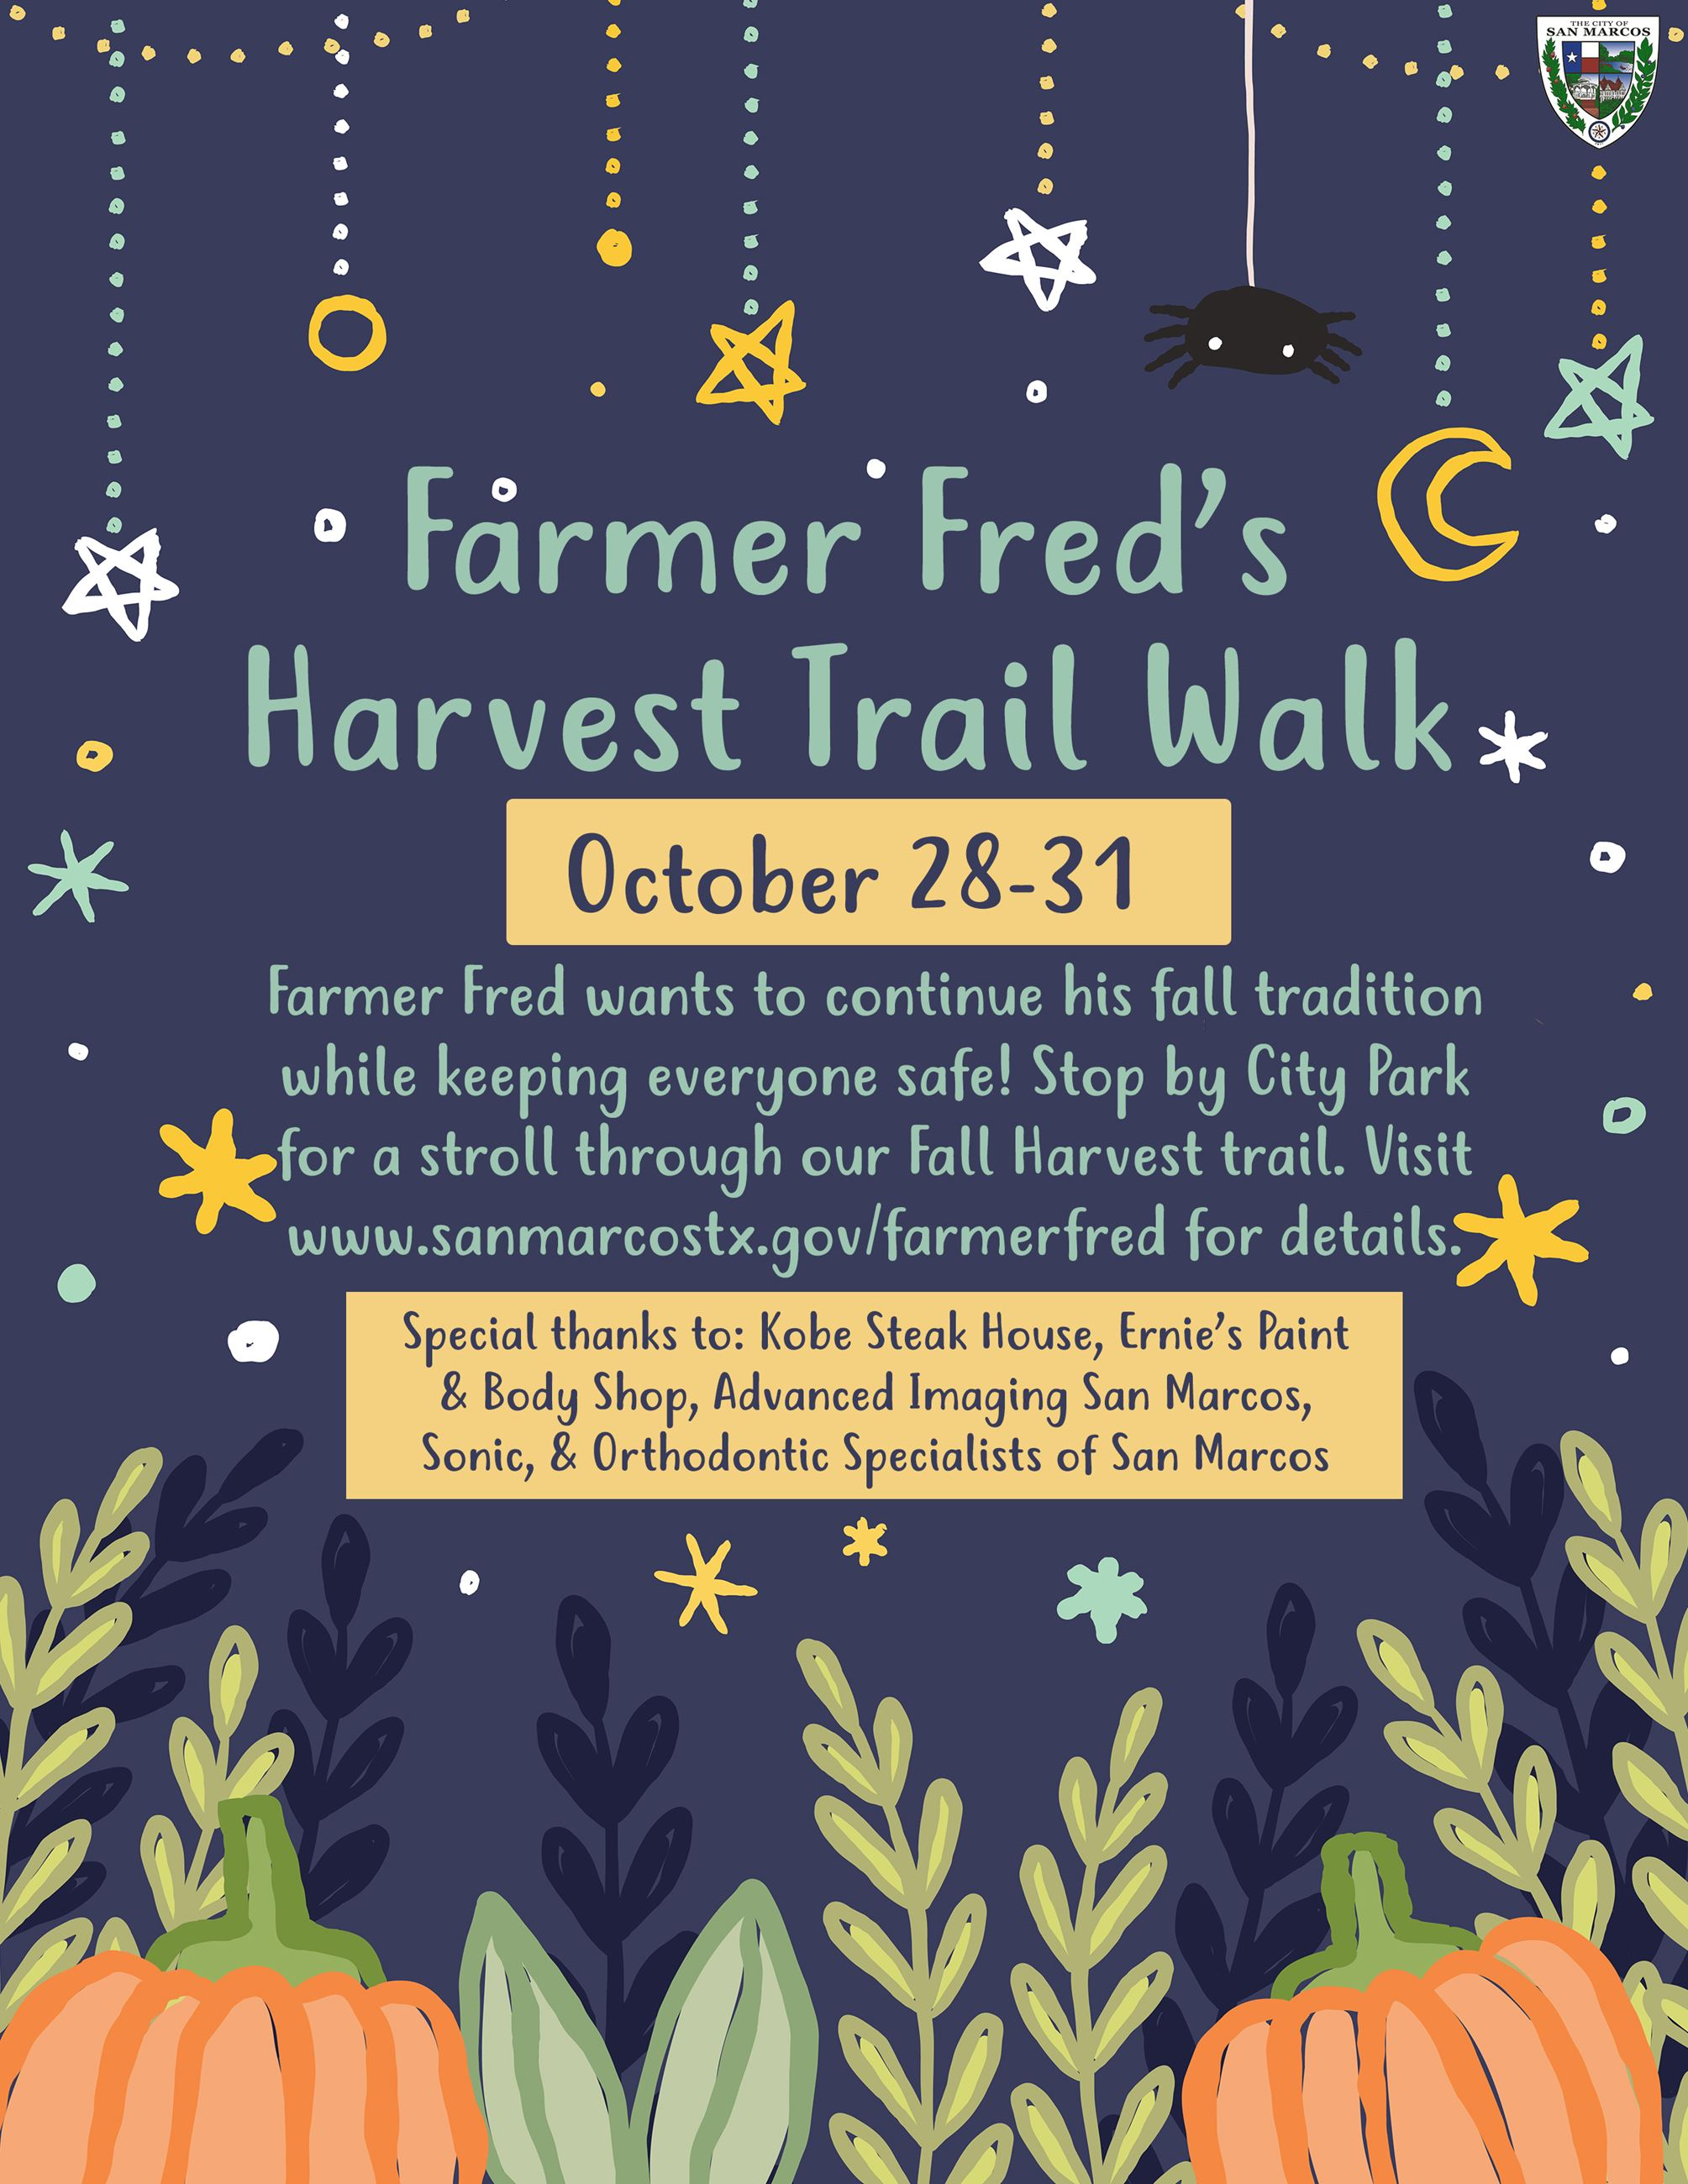 Farmer Fred's Harvest Trail Walk